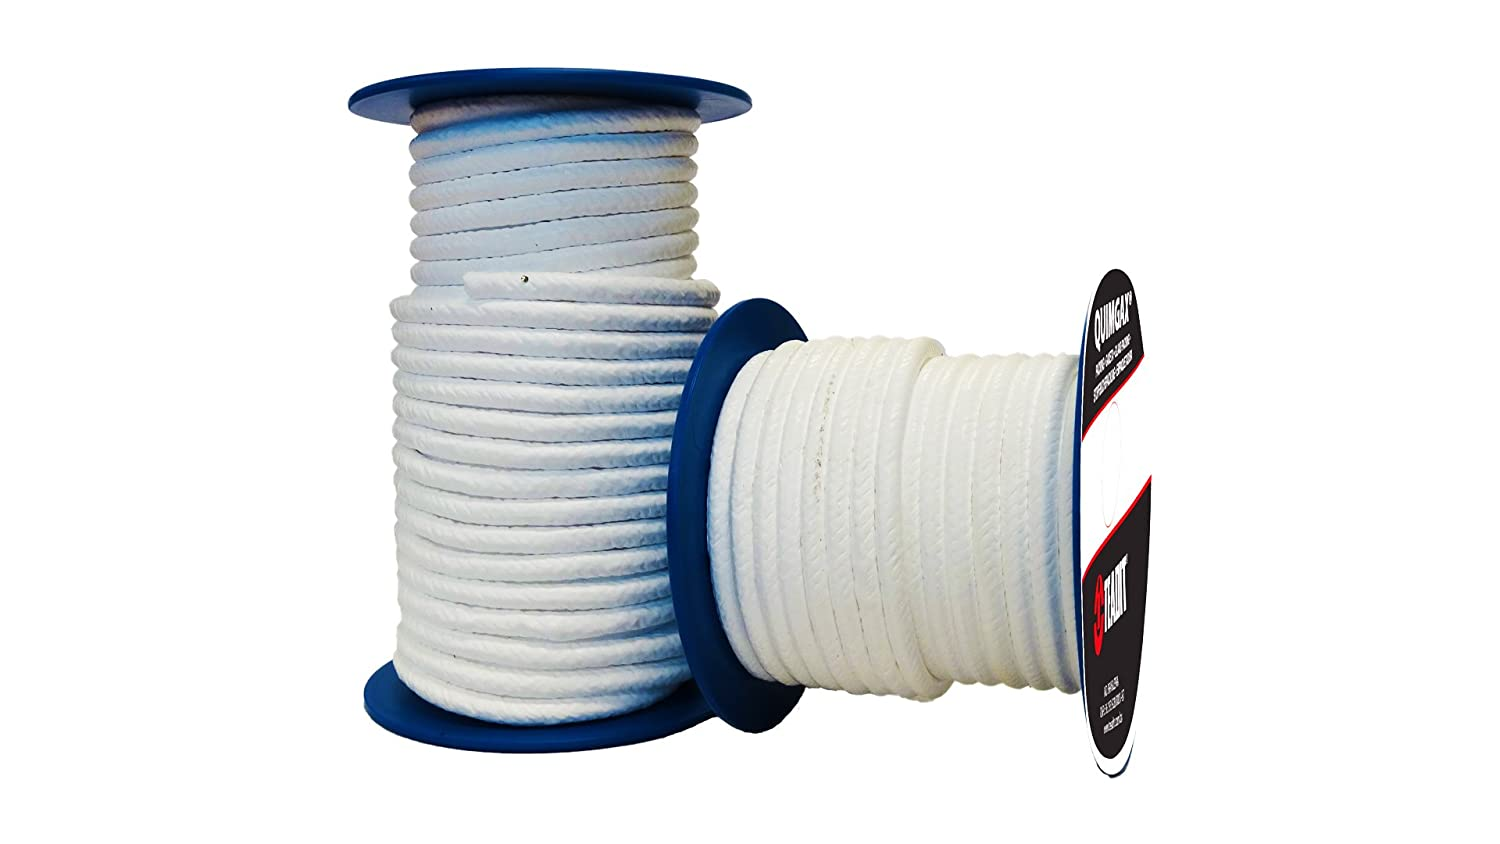 STCC 1//2 CS x 12 Spool 1//2 CS x 12/' Spool Sterling Seal and Supply 24A.500x12 Teadit Style 24A Expanded PTFE Valve Stem Packing